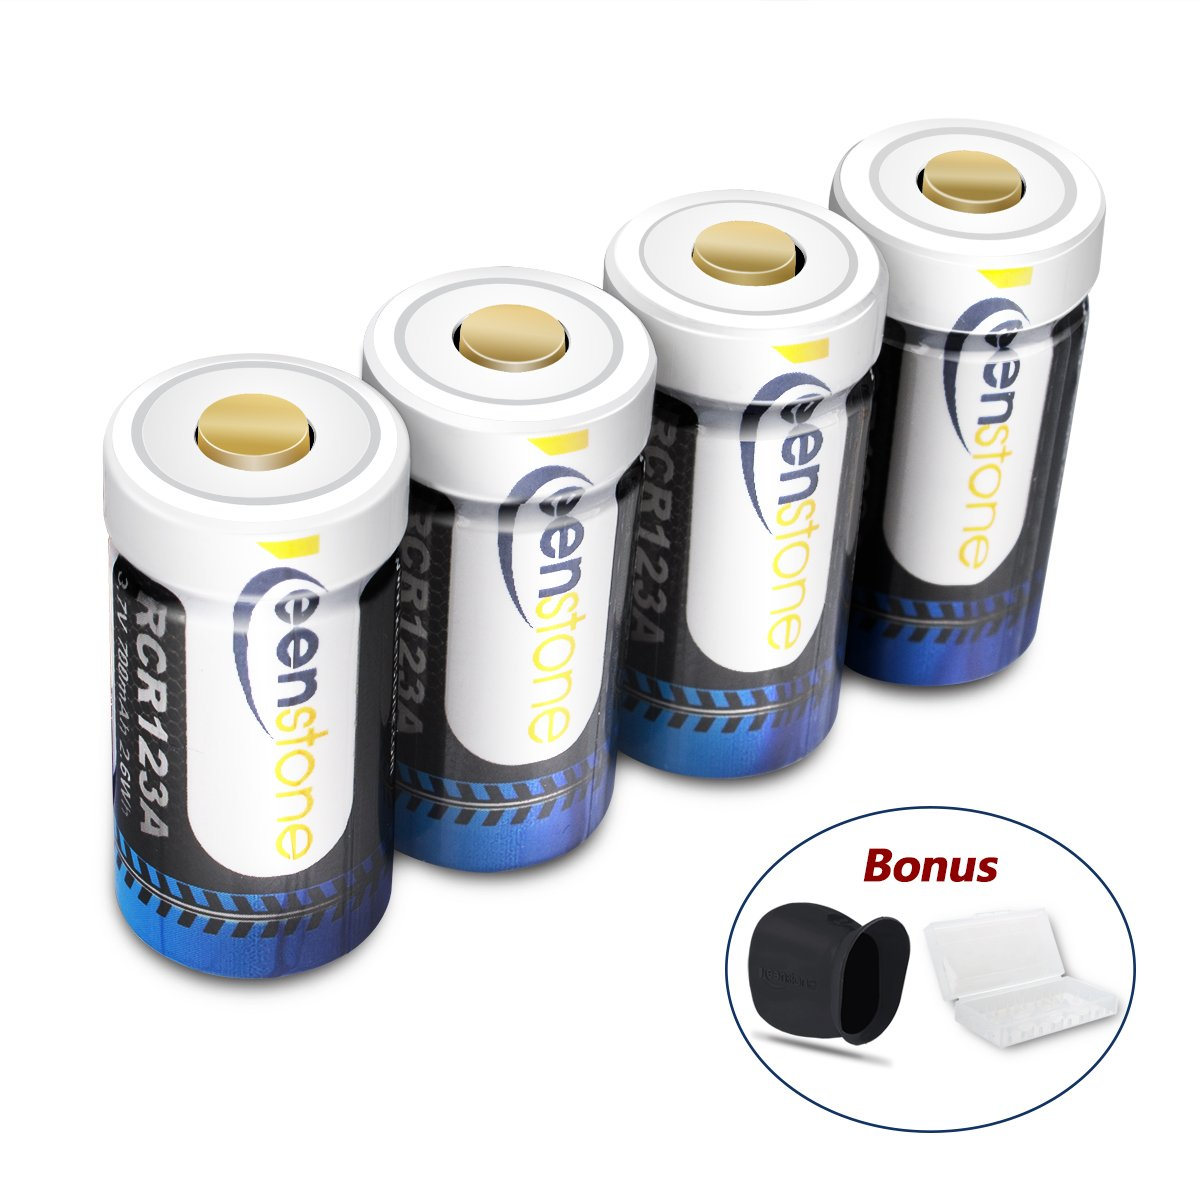 keenstone RCR123A Rechargeable Camera Batteries, 4Pcs 700mAh RCR123A Protected Rechargeable Li-ion Batteries with Camera Skin and Battery Case for Arlo VMS3030/3230/3330/3430 Cameras